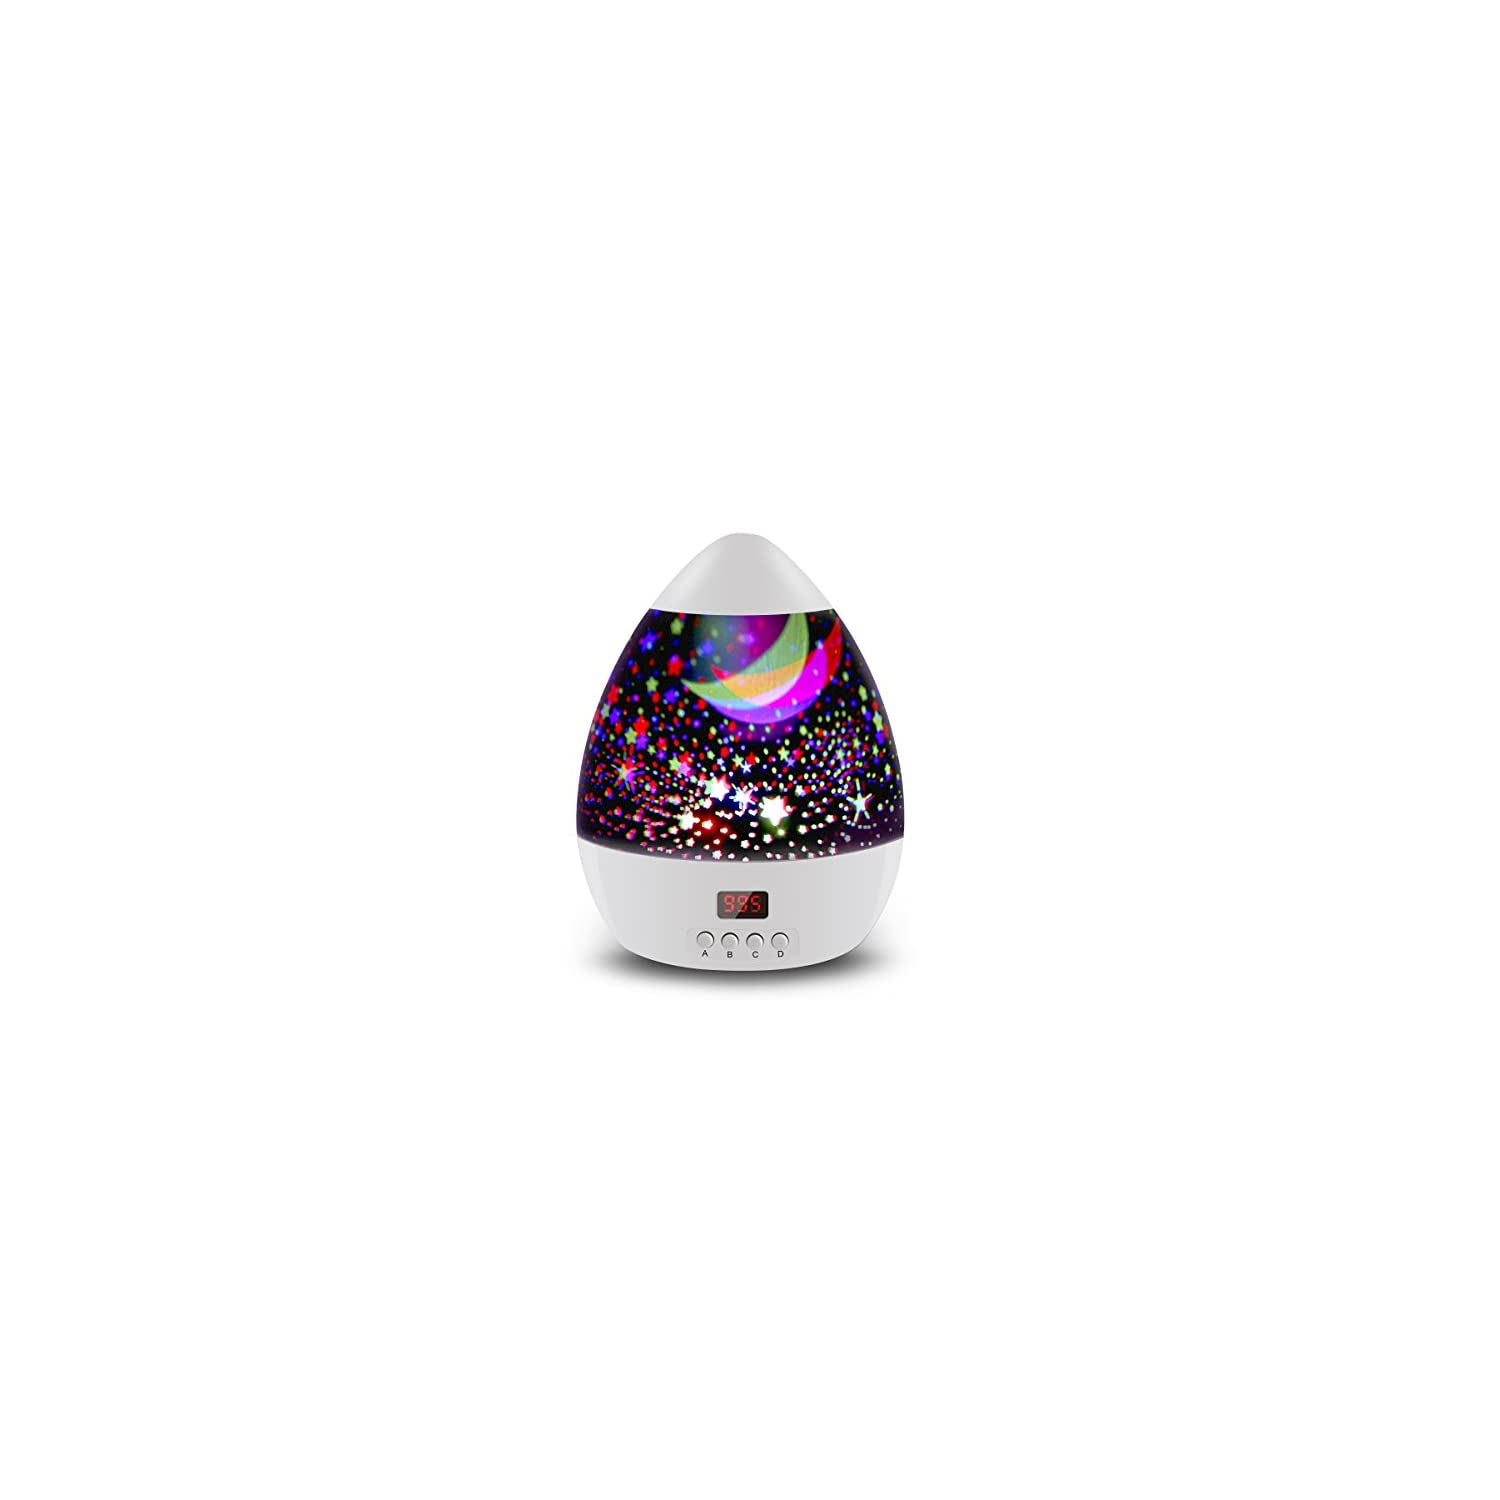 Star Sky Night Lamp, ANTEQI Star Projector with Timer,Rotating Night Light for Kids,Christmas Gift (White)